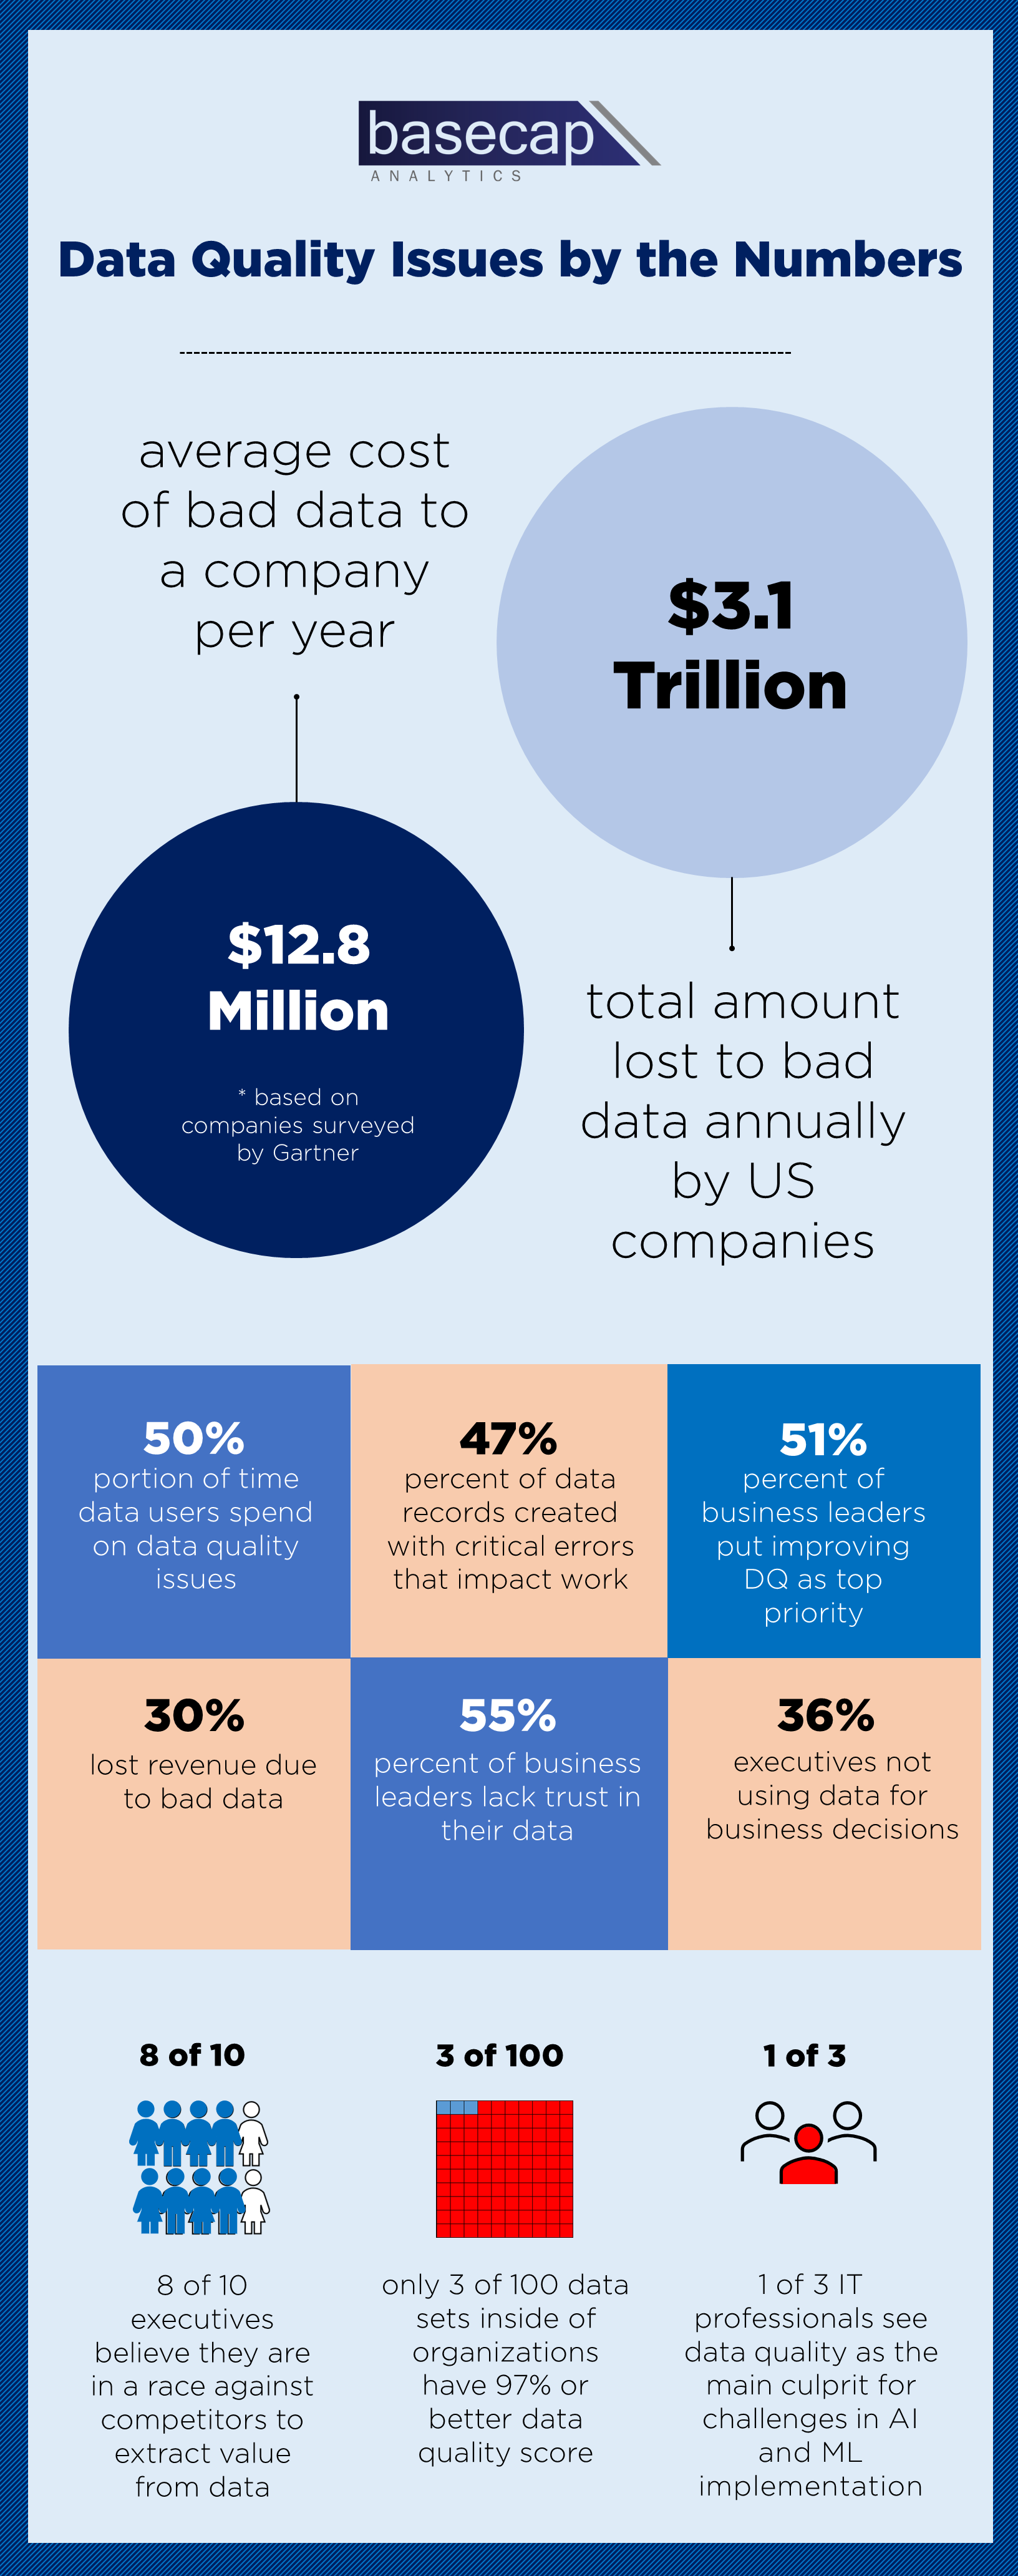 Data Quality Issues By the Numbers_06142021.png